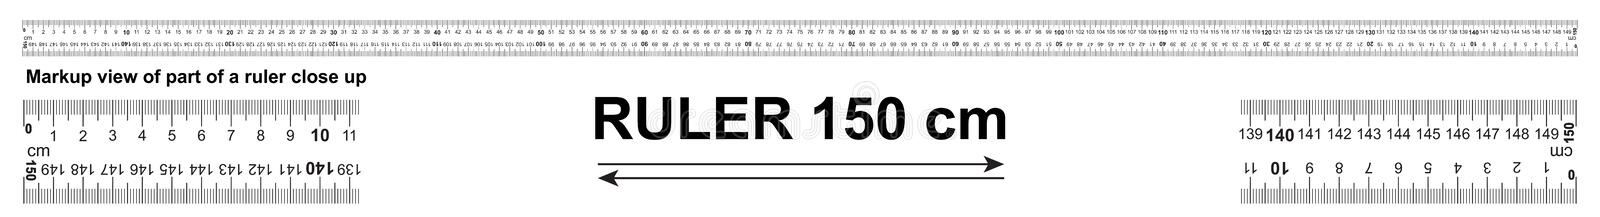 Bidirectional ruler 150 cm or 1500 mm. Used in construction, engineering, clothing manufacturing, carpentry stock illustration